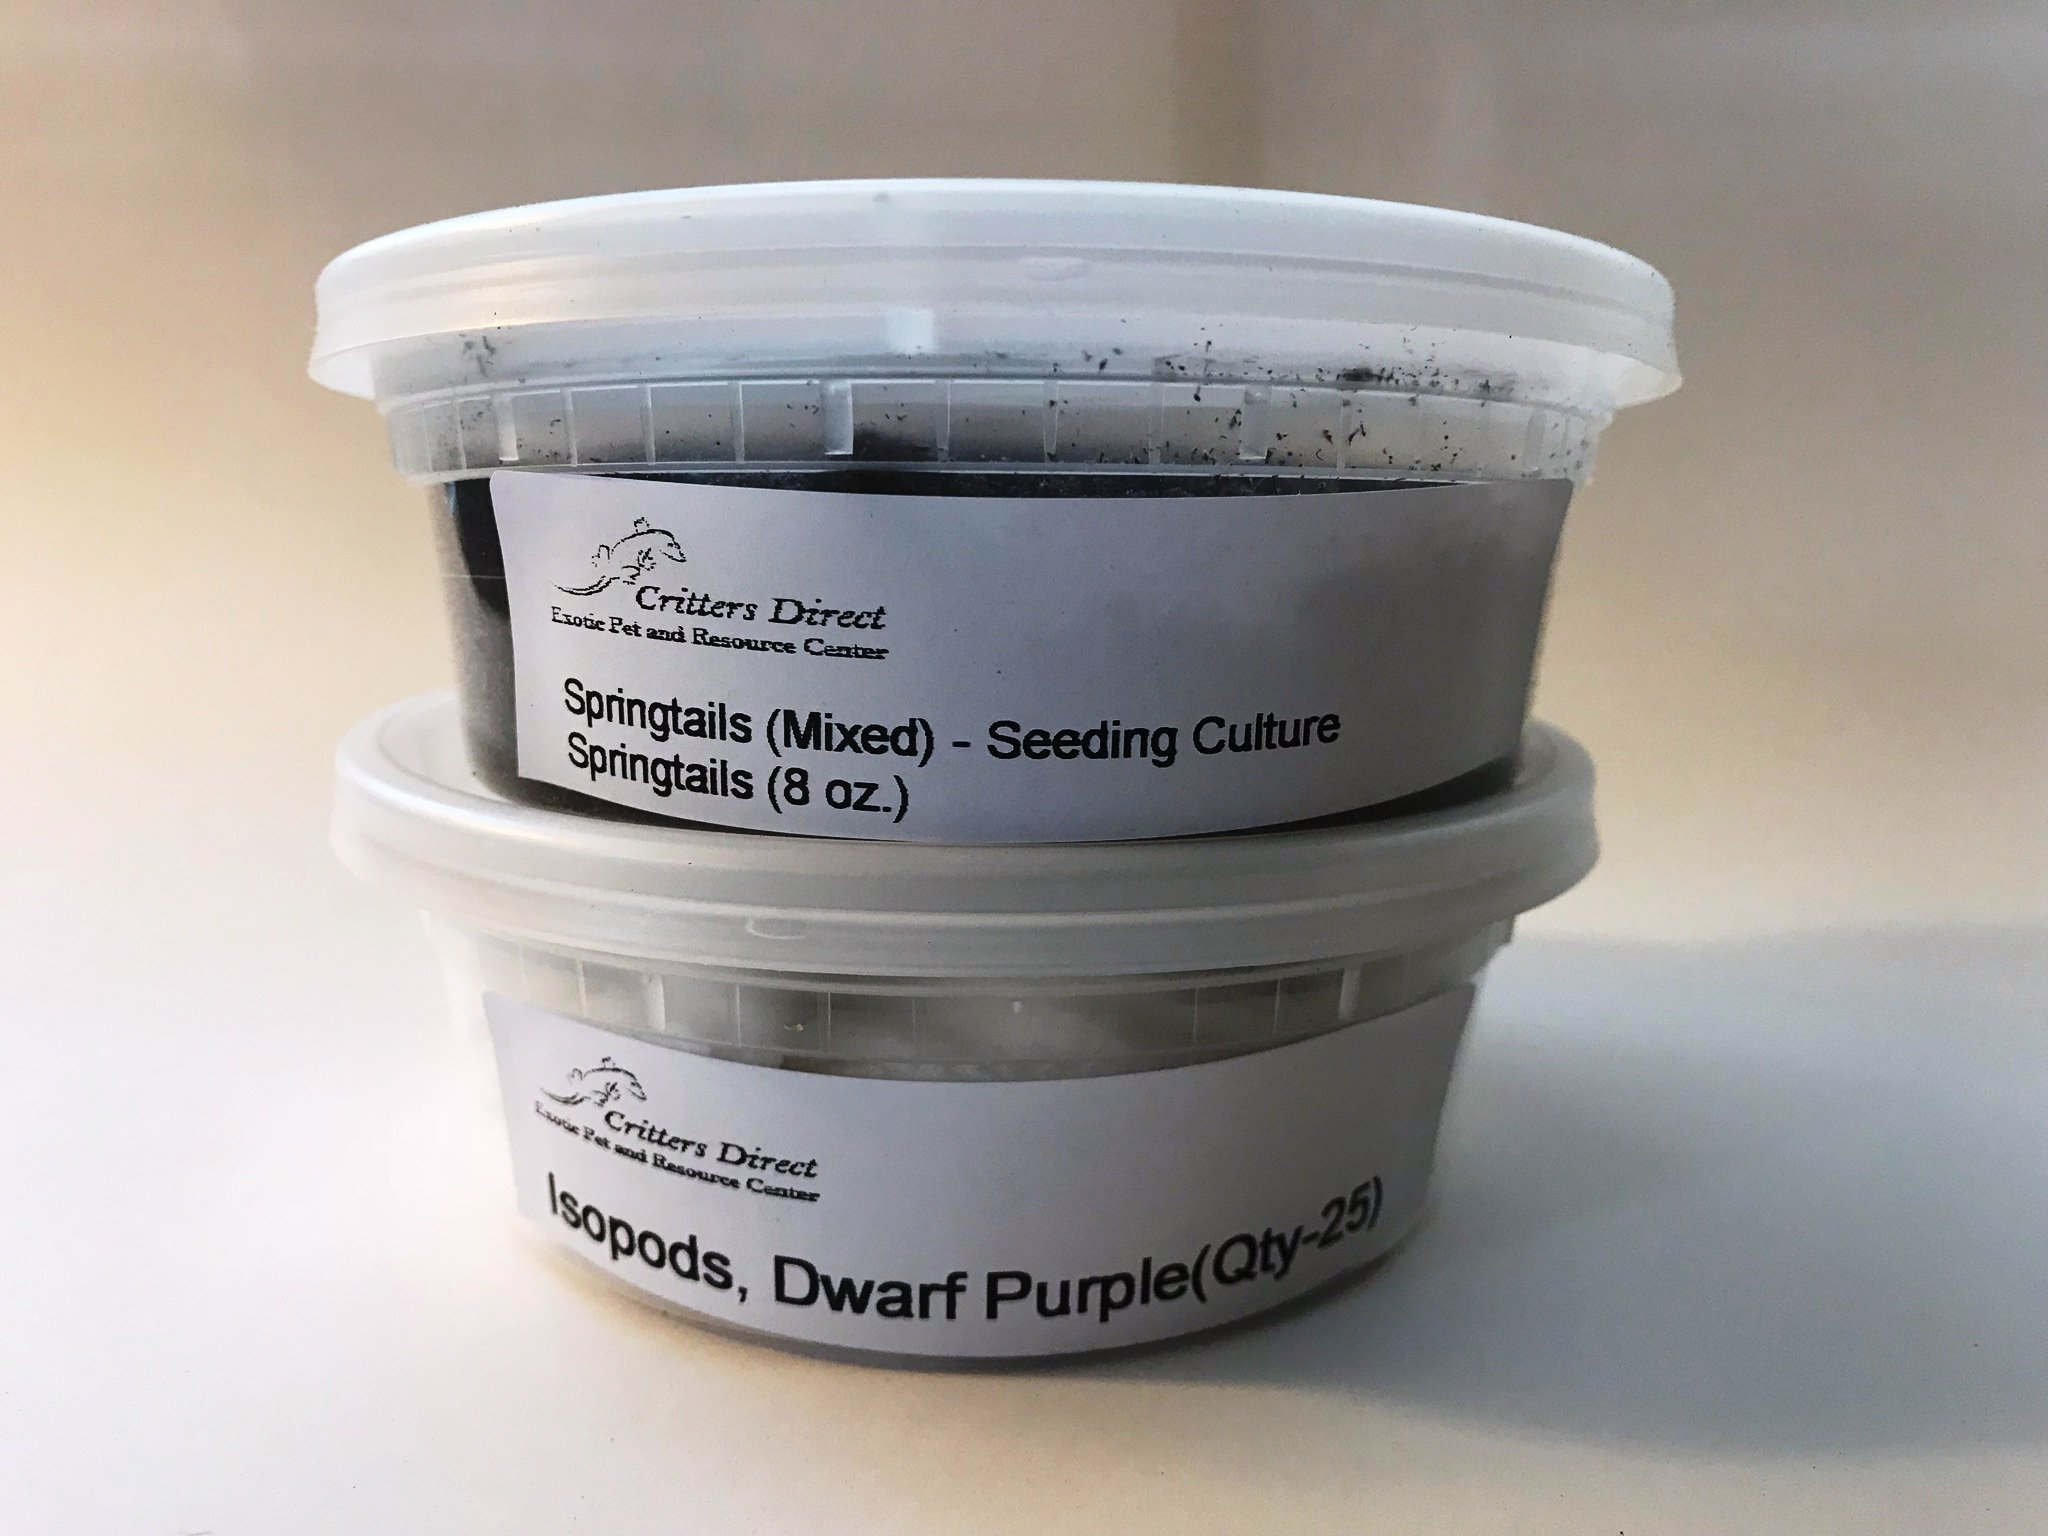 Critters Direct Springtails + Isopods Combo Package (Mixed Springs + Purple Micropods) by Critters Direct